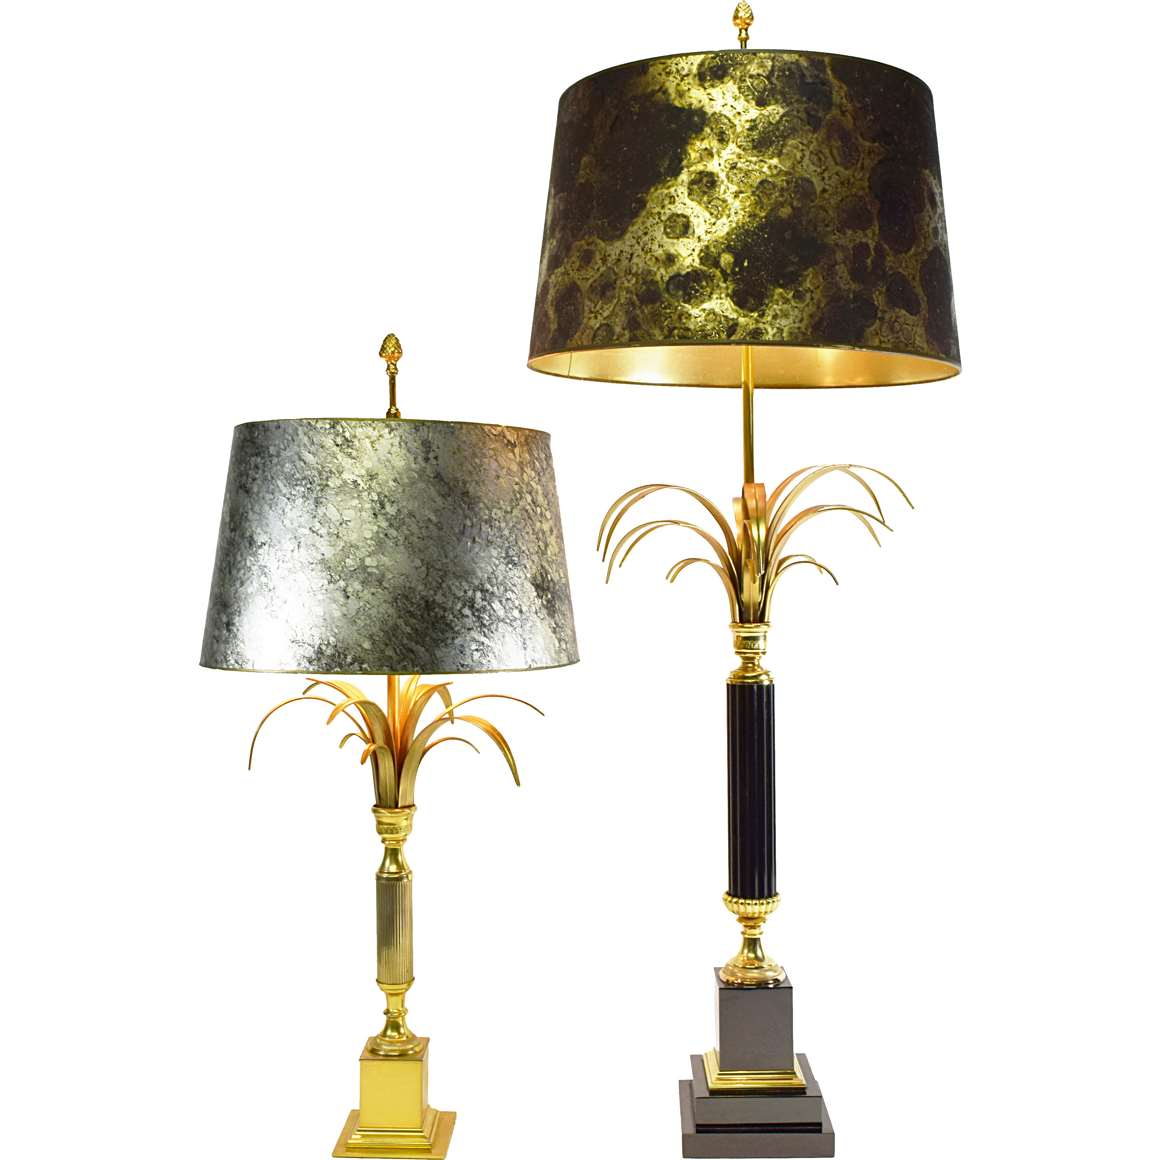 Boulanger Reed Table Lamps - long brass base